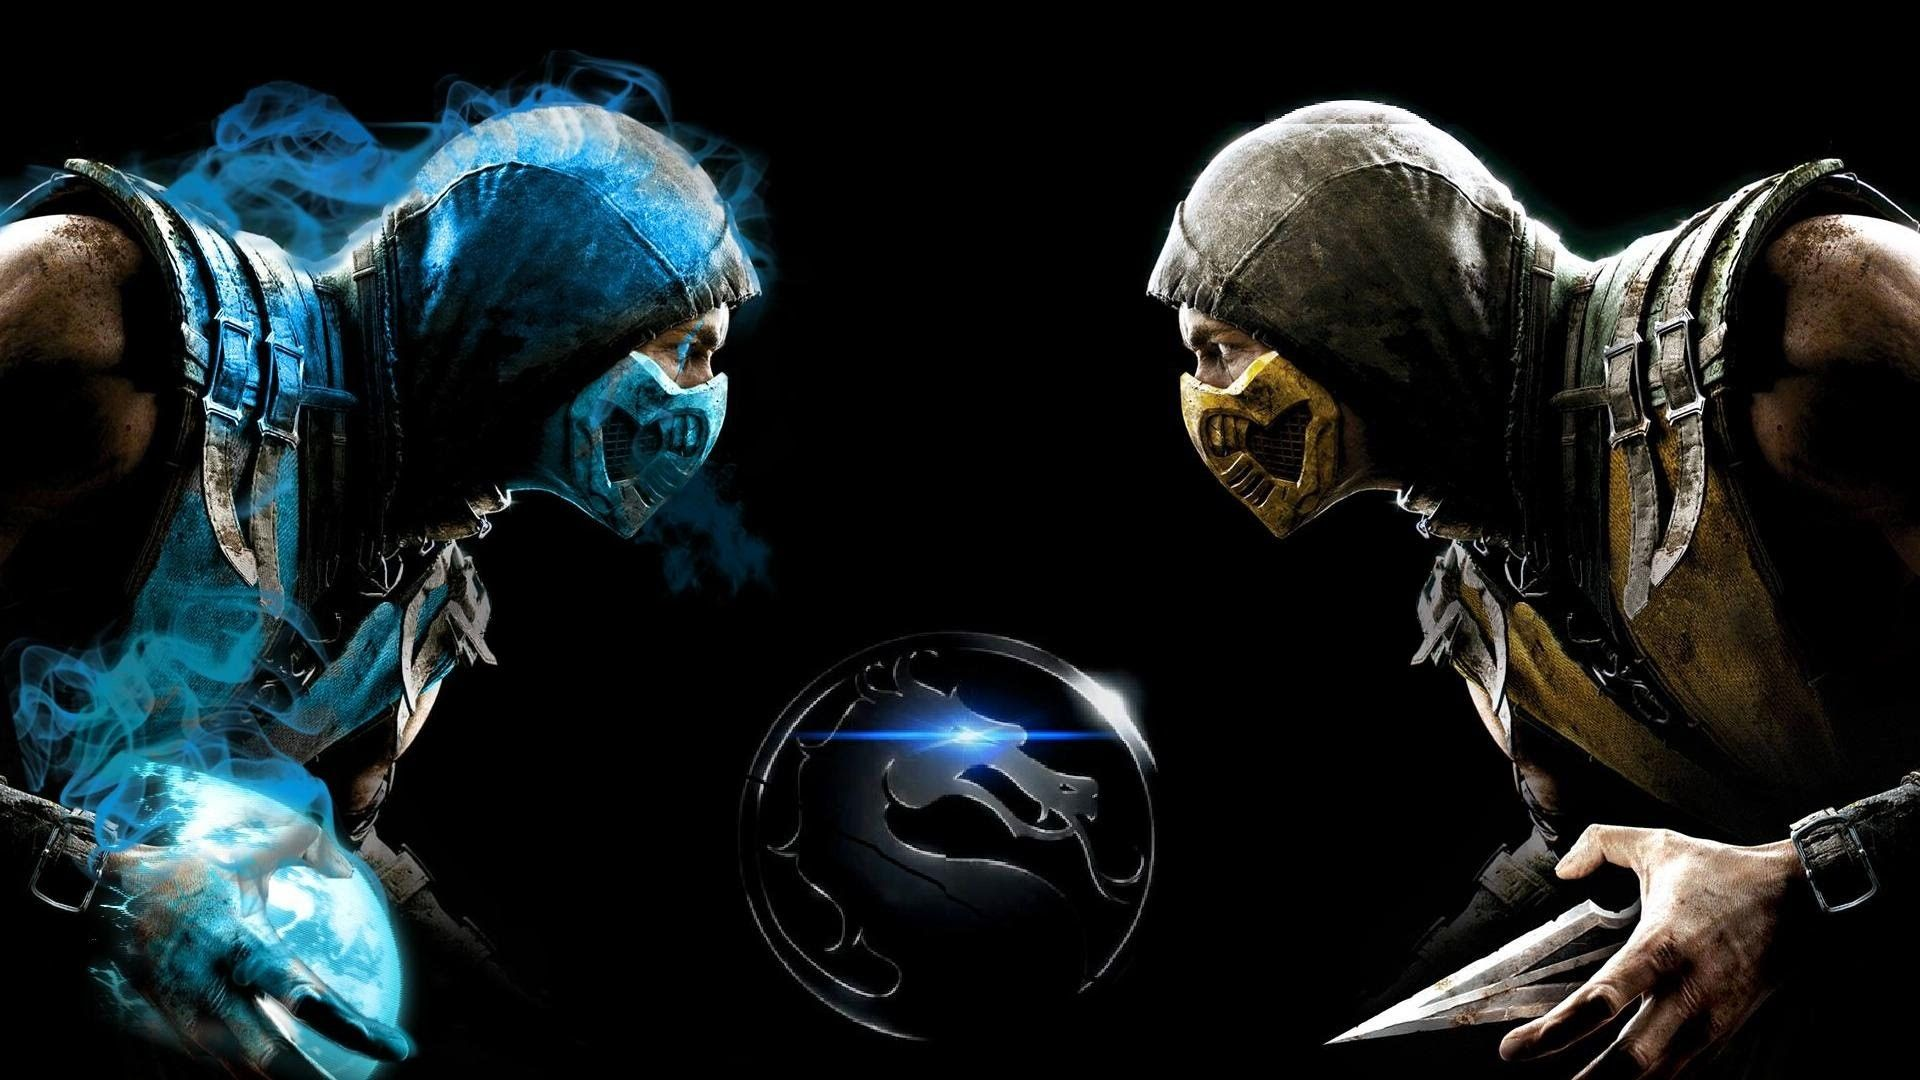 4K Mortal Kombat Wallpapers